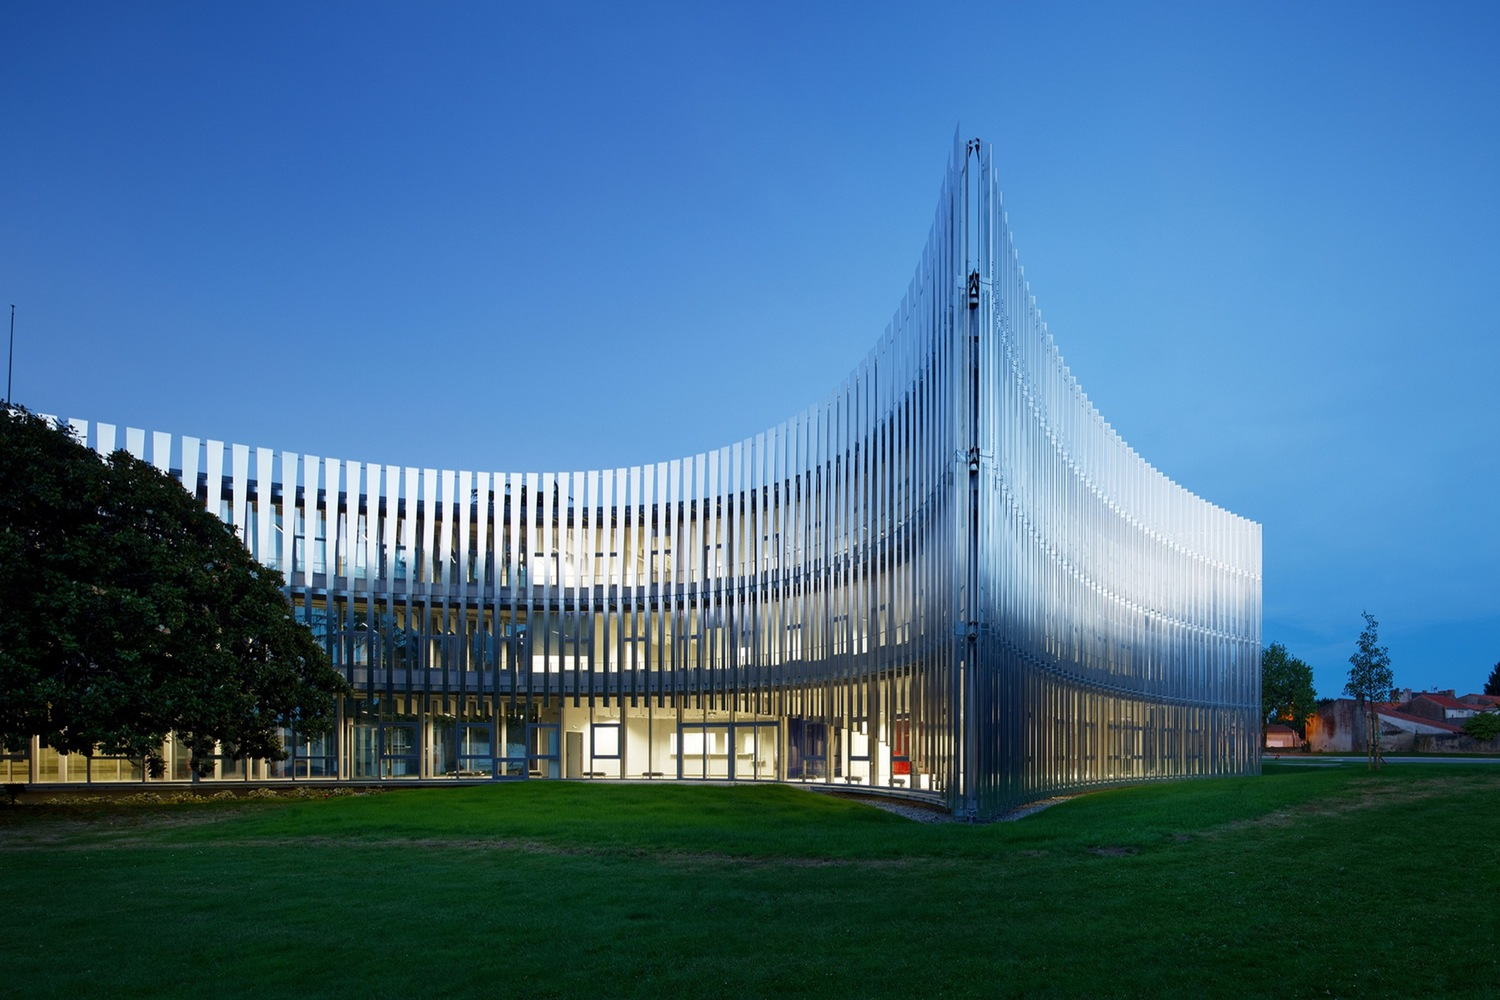 Community of Municipalities' Offices / Atelier du Pont